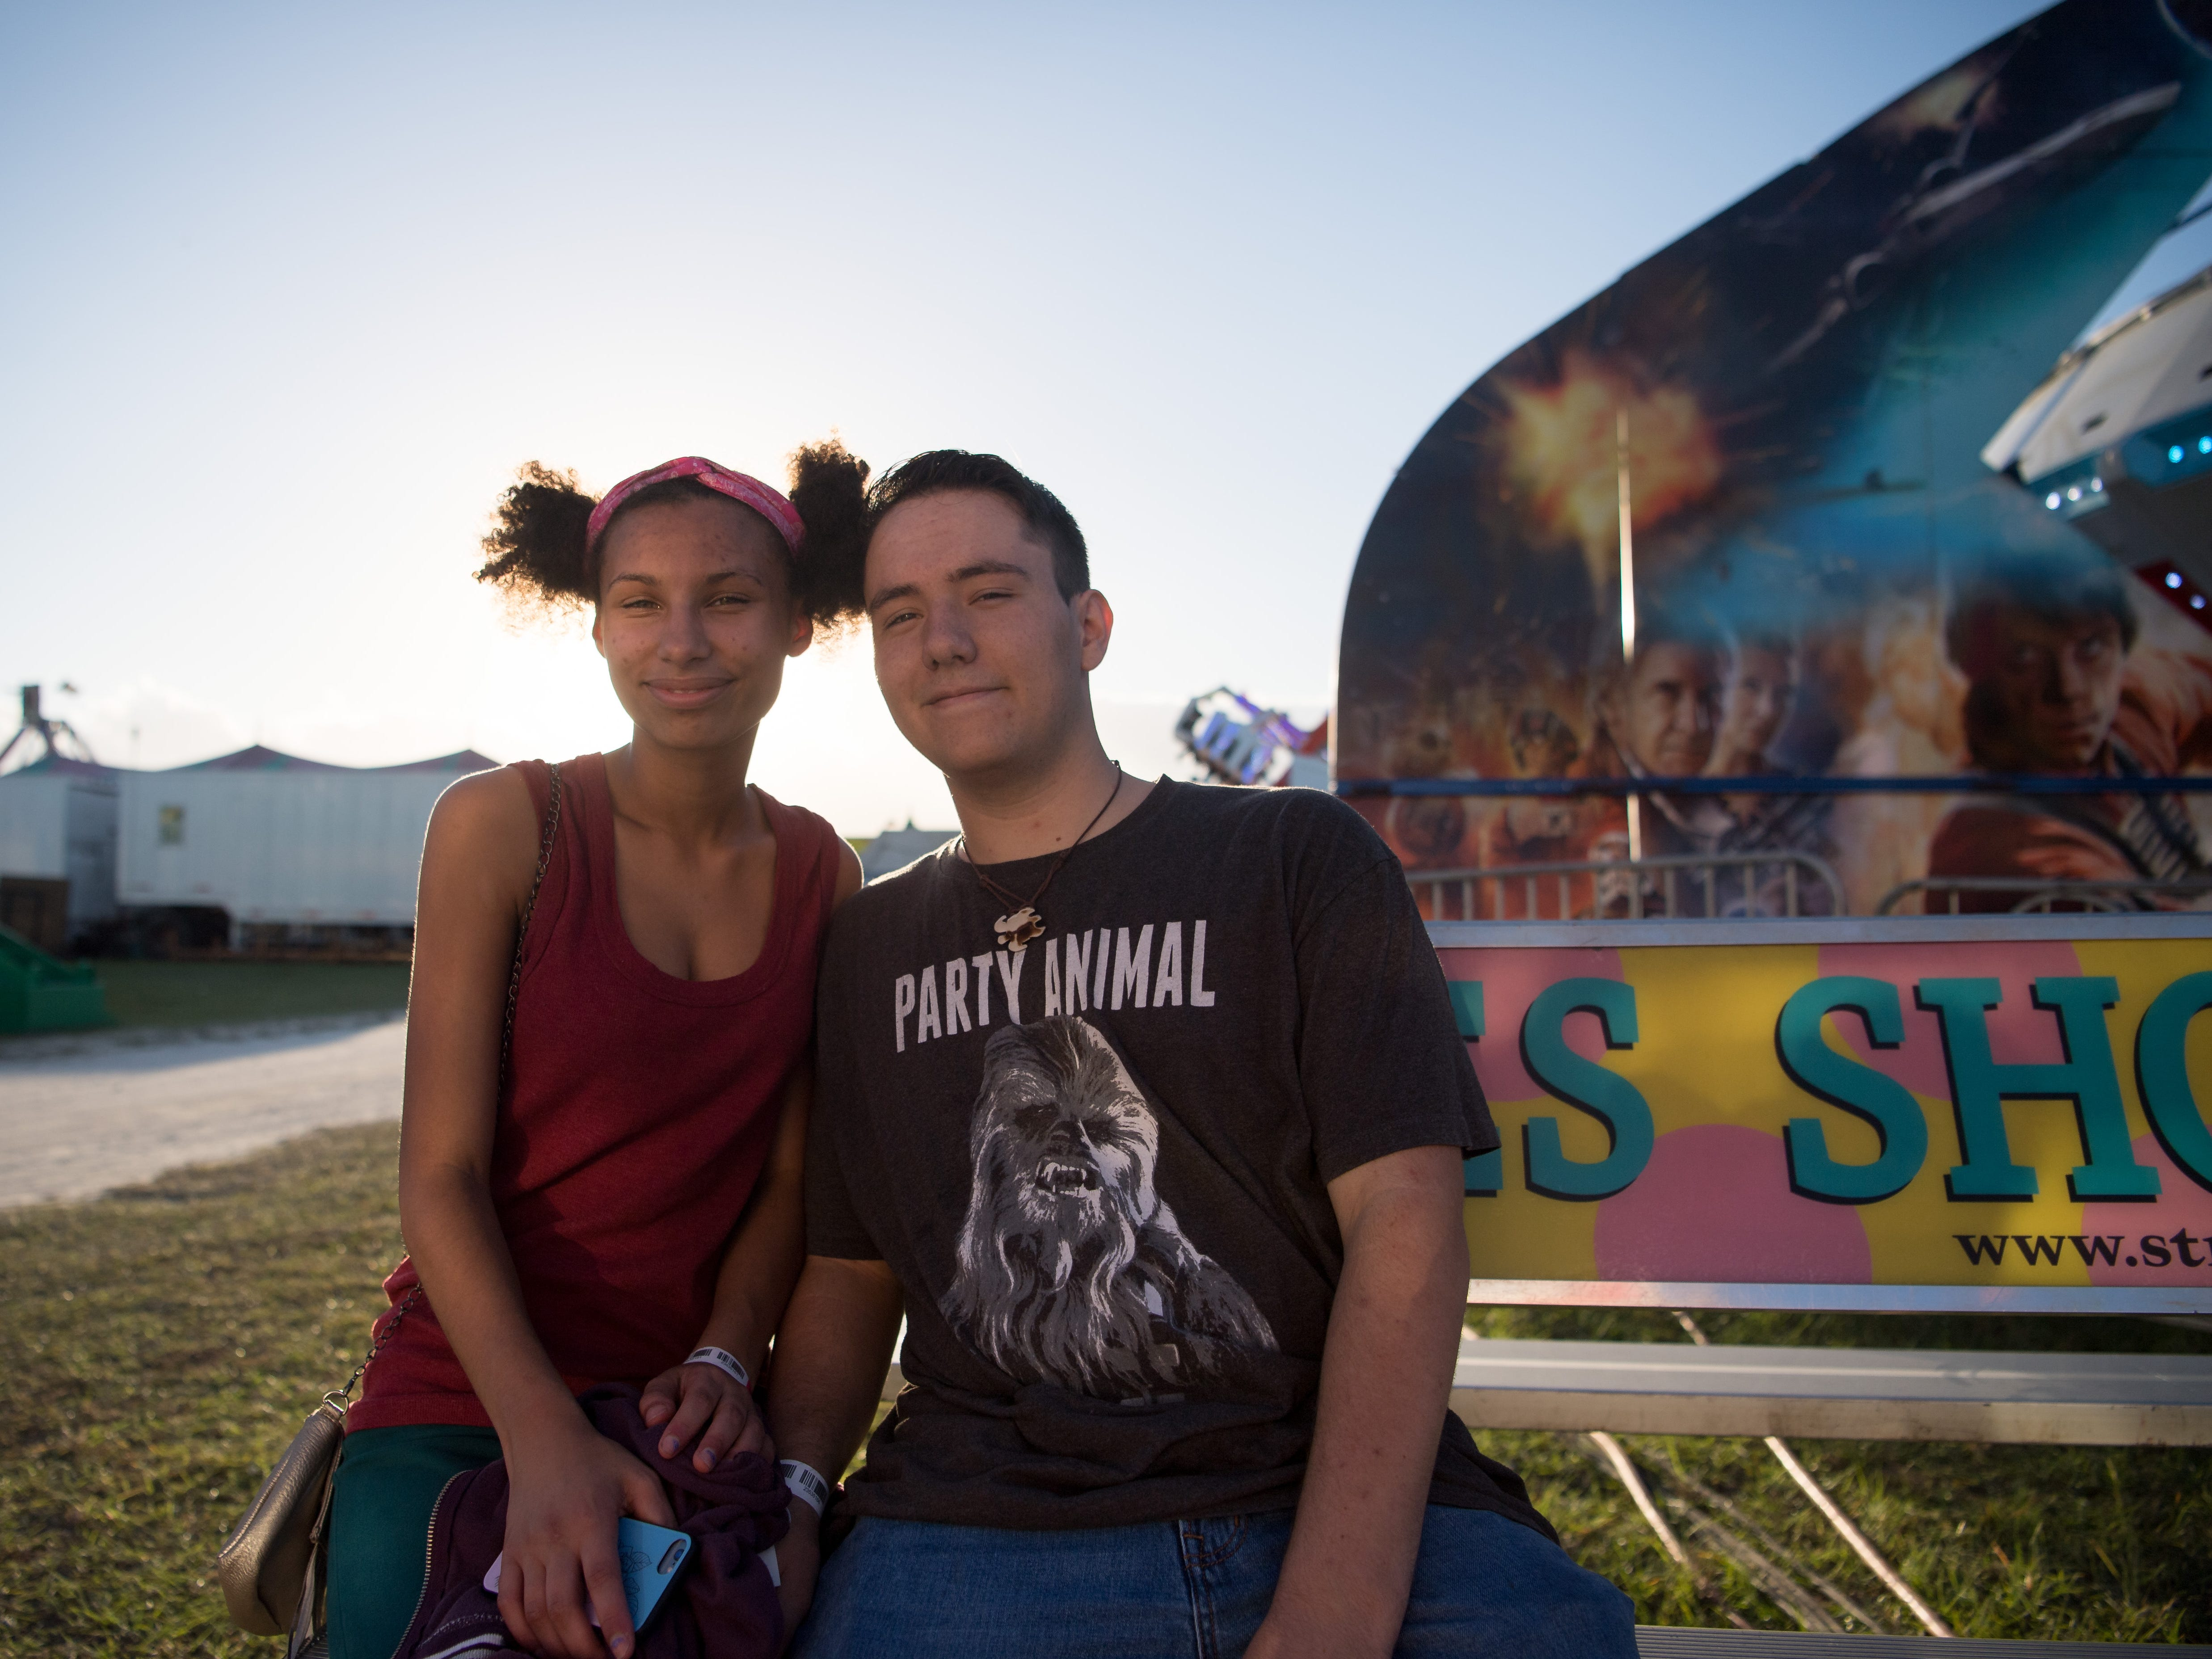 Dysani Hart (left) and Kaileb Riffel, both 17 and from Port St. Lucie, spend their first date at the St. Lucie County Fair on Friday, Feb. 22, 2019, at the St. Lucie County Fairgrounds at 15601 West Midway Road in Fort Pierce.